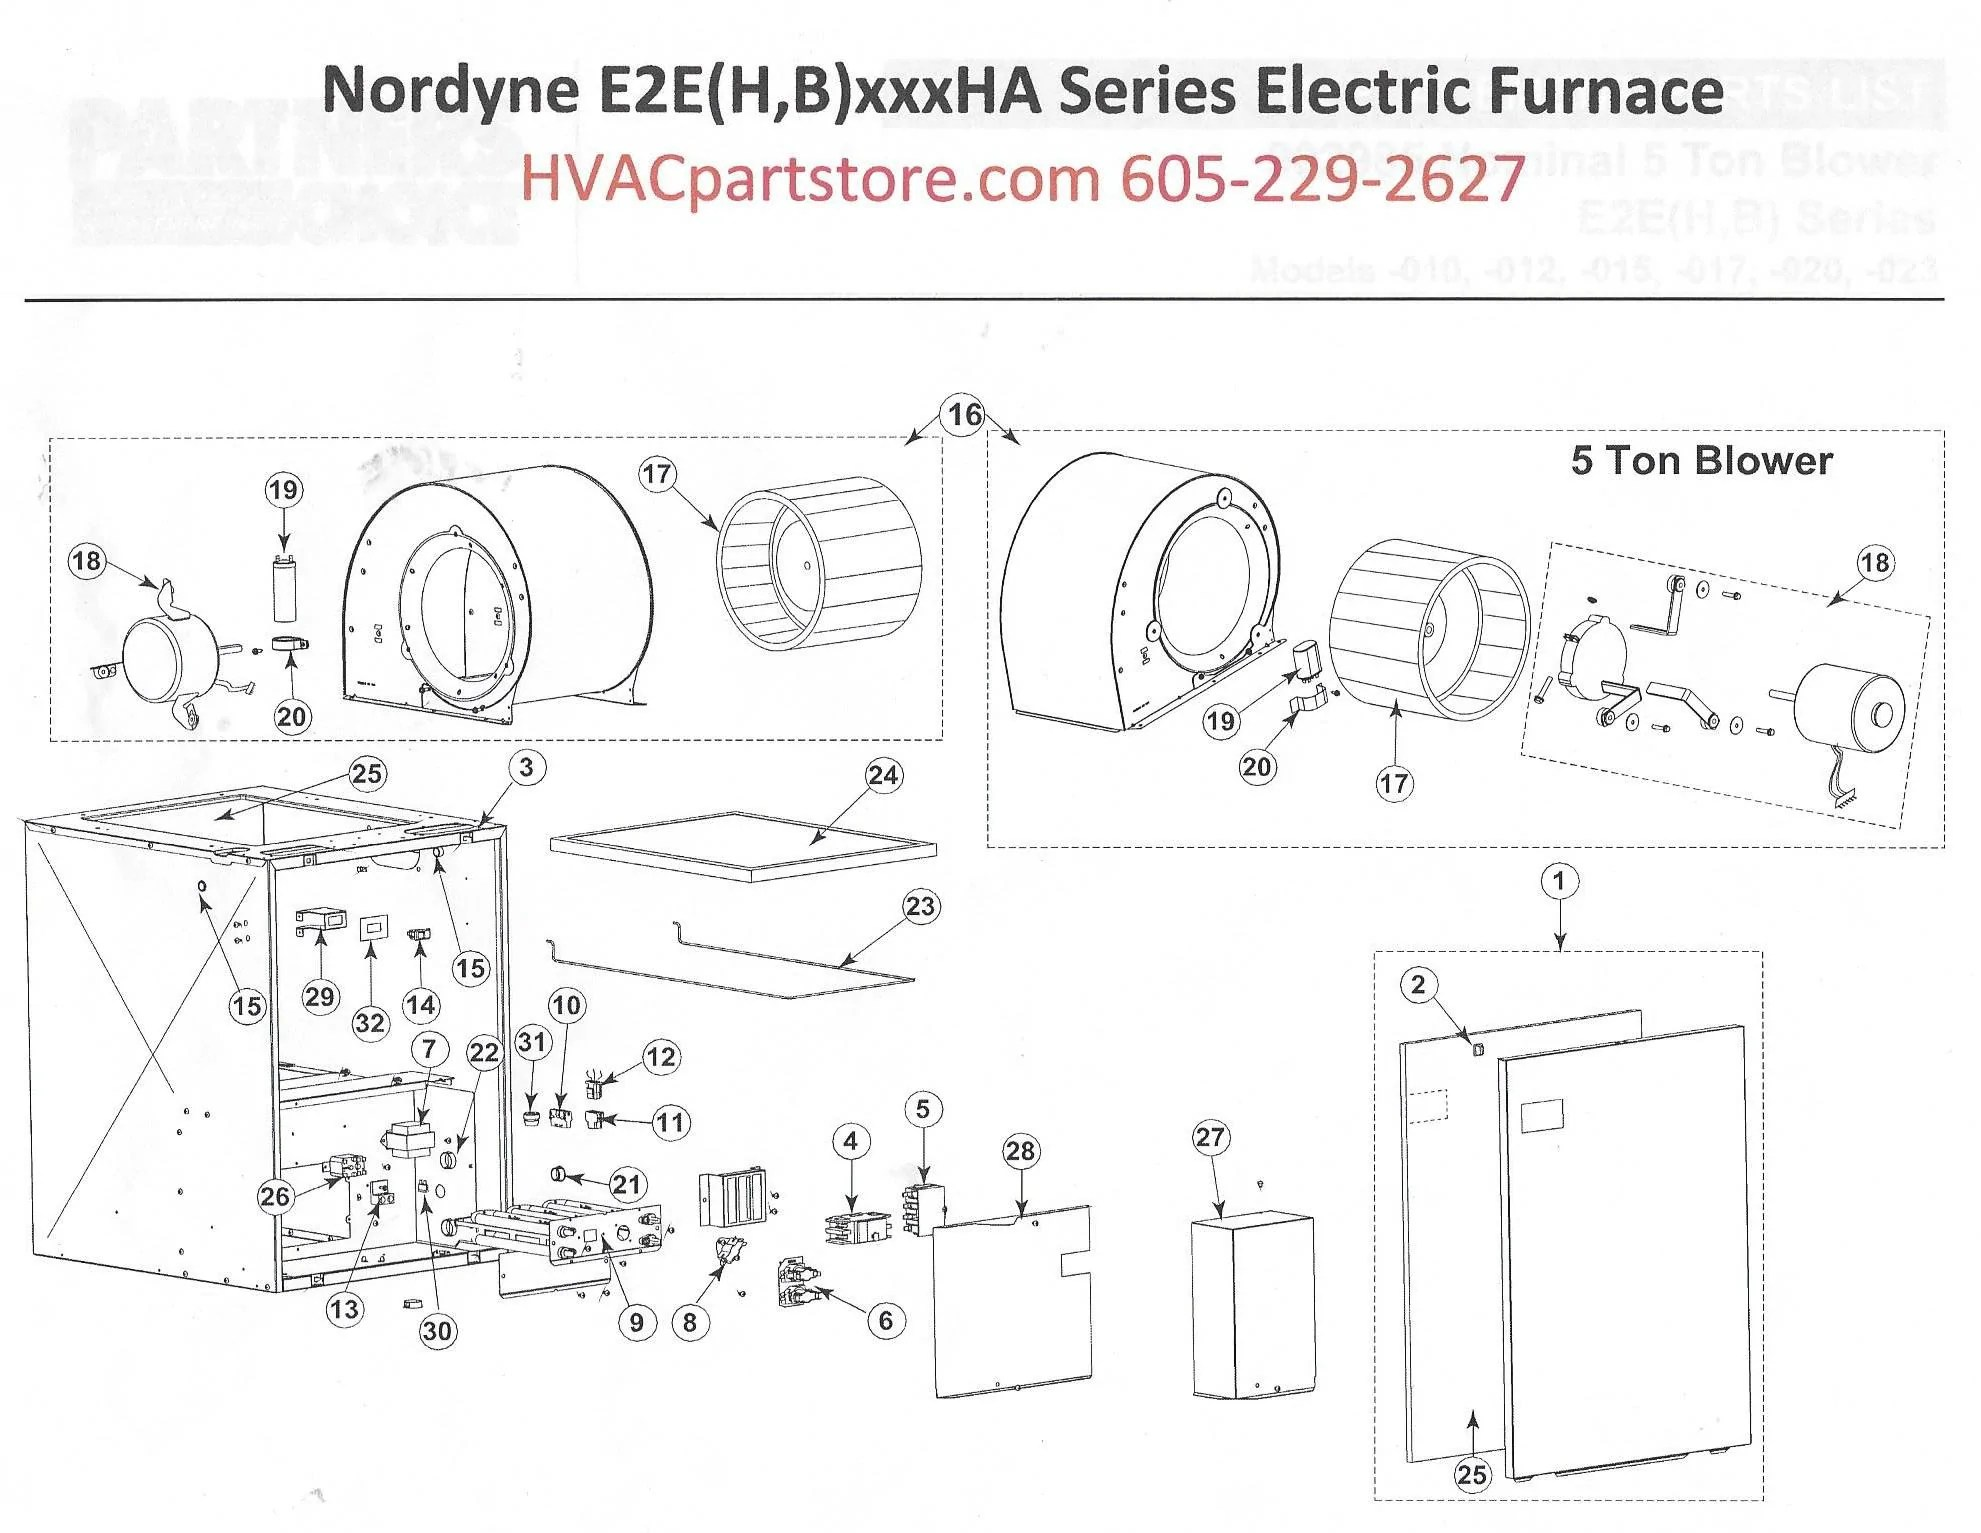 E2EB015HB Nordyne Electric Furnace Parts – HVACpartstore